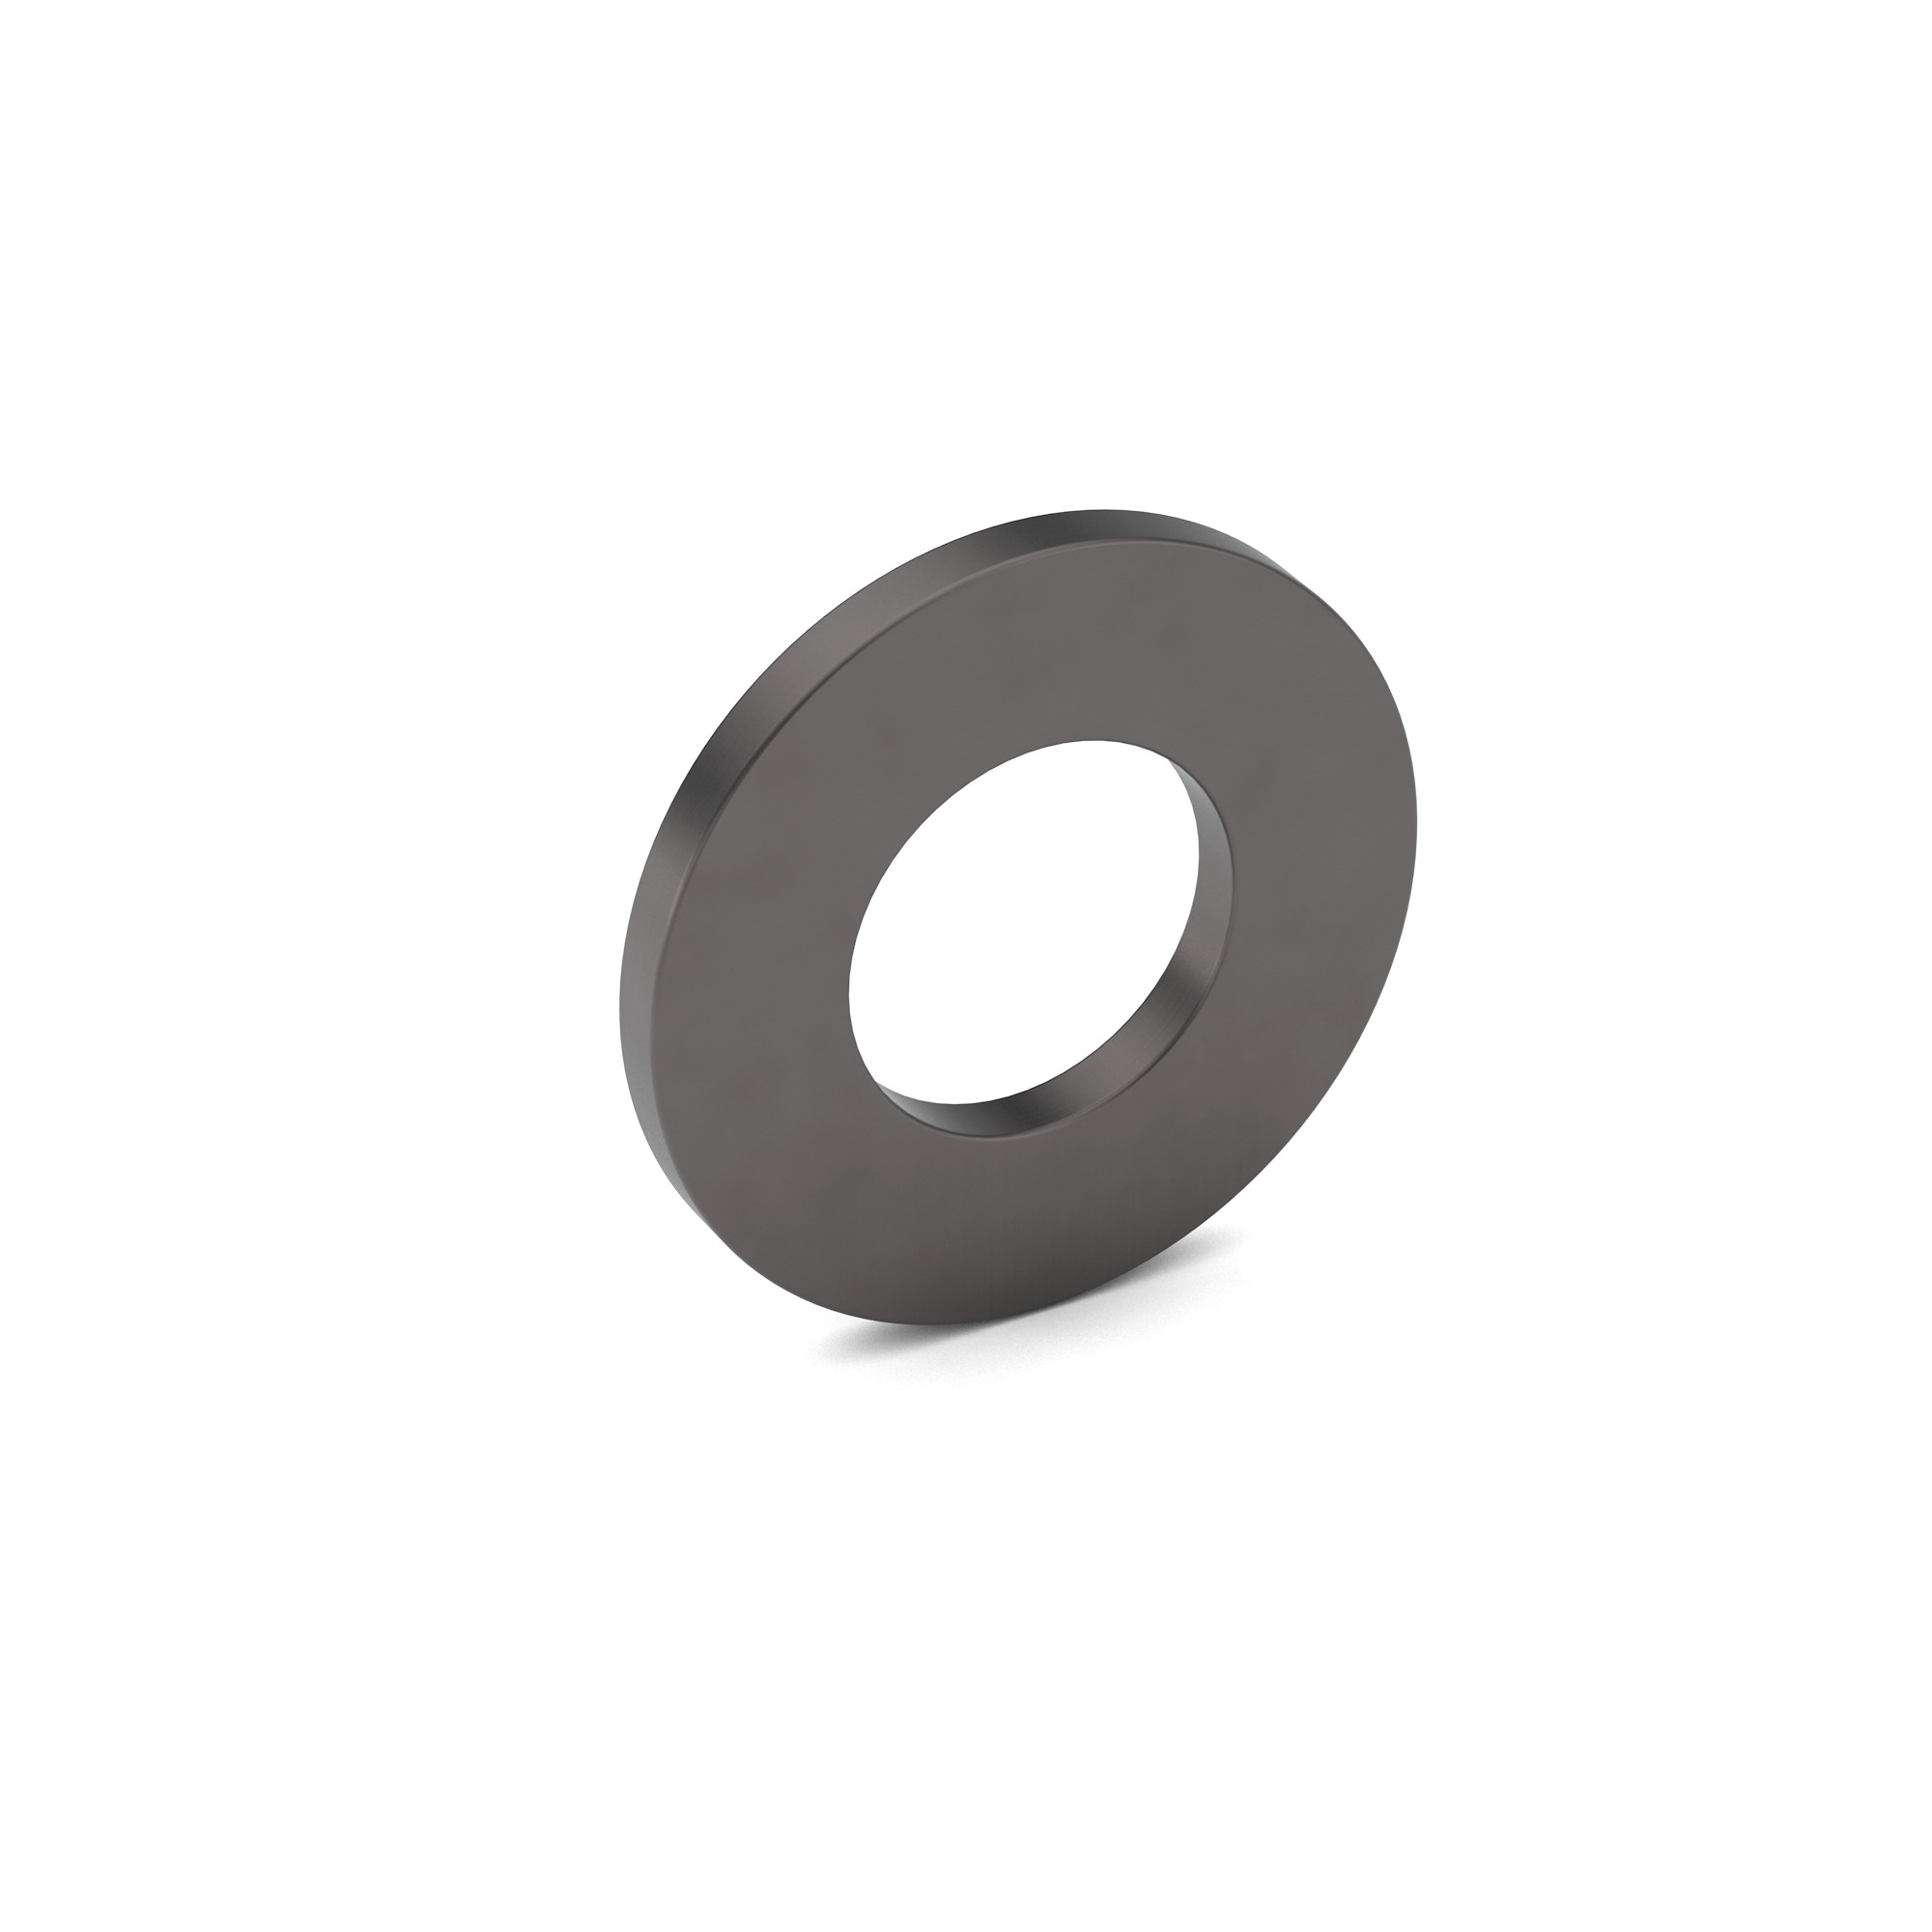 1/4 Carbon Steel SAE Flat Washer Plain Finish